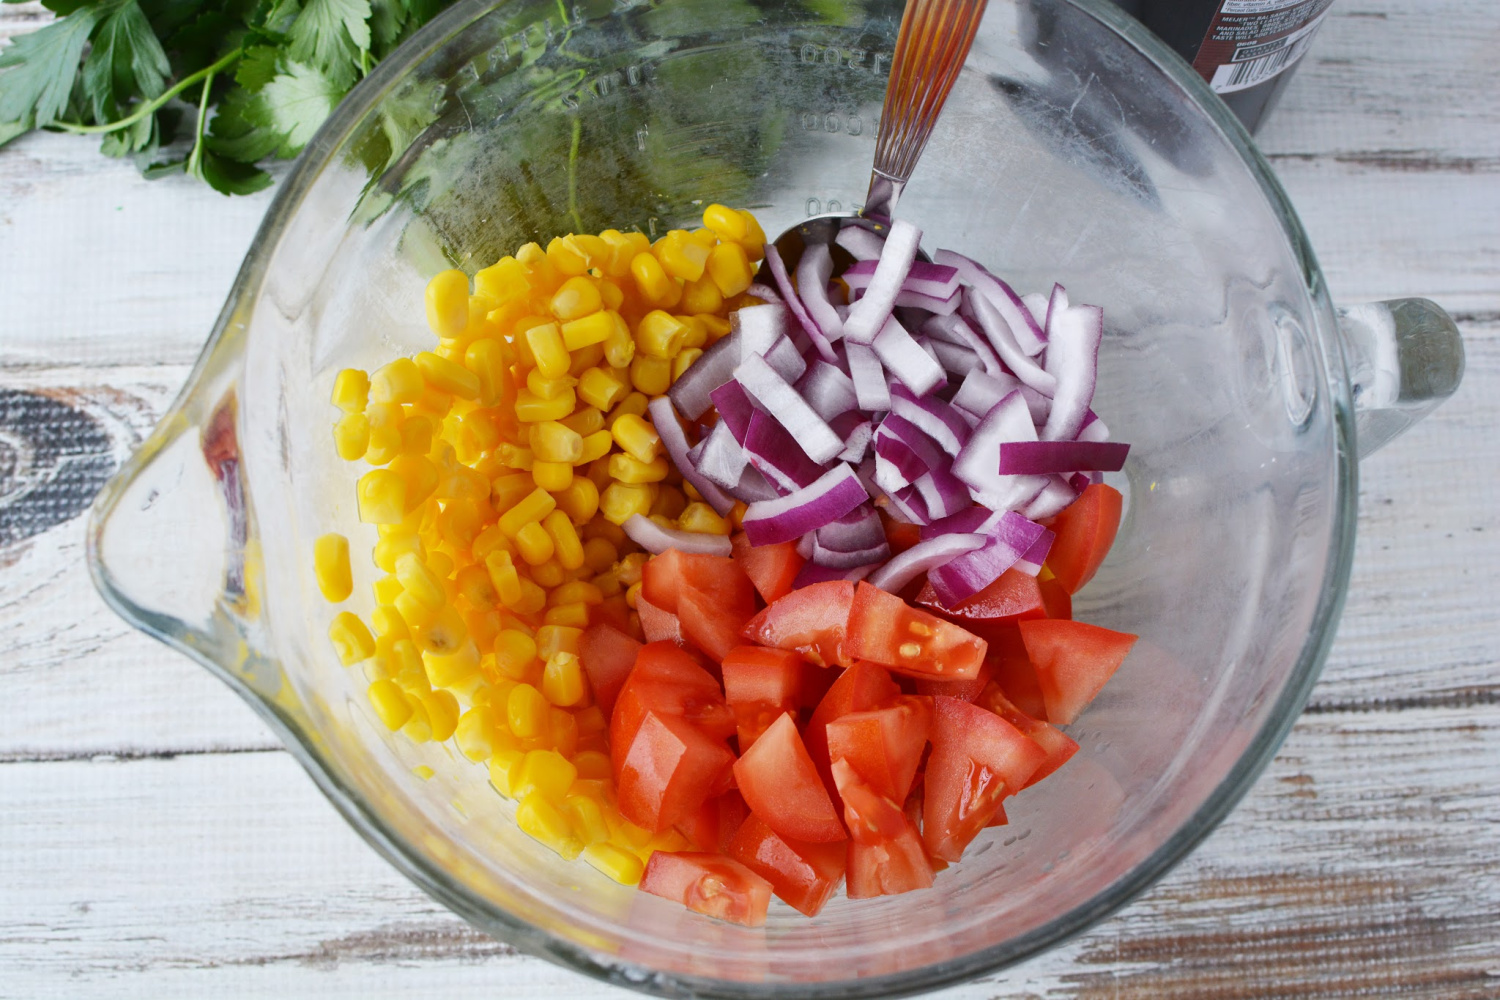 Corn and Tomato Salad instructions include red onion, parsley and olive oil.